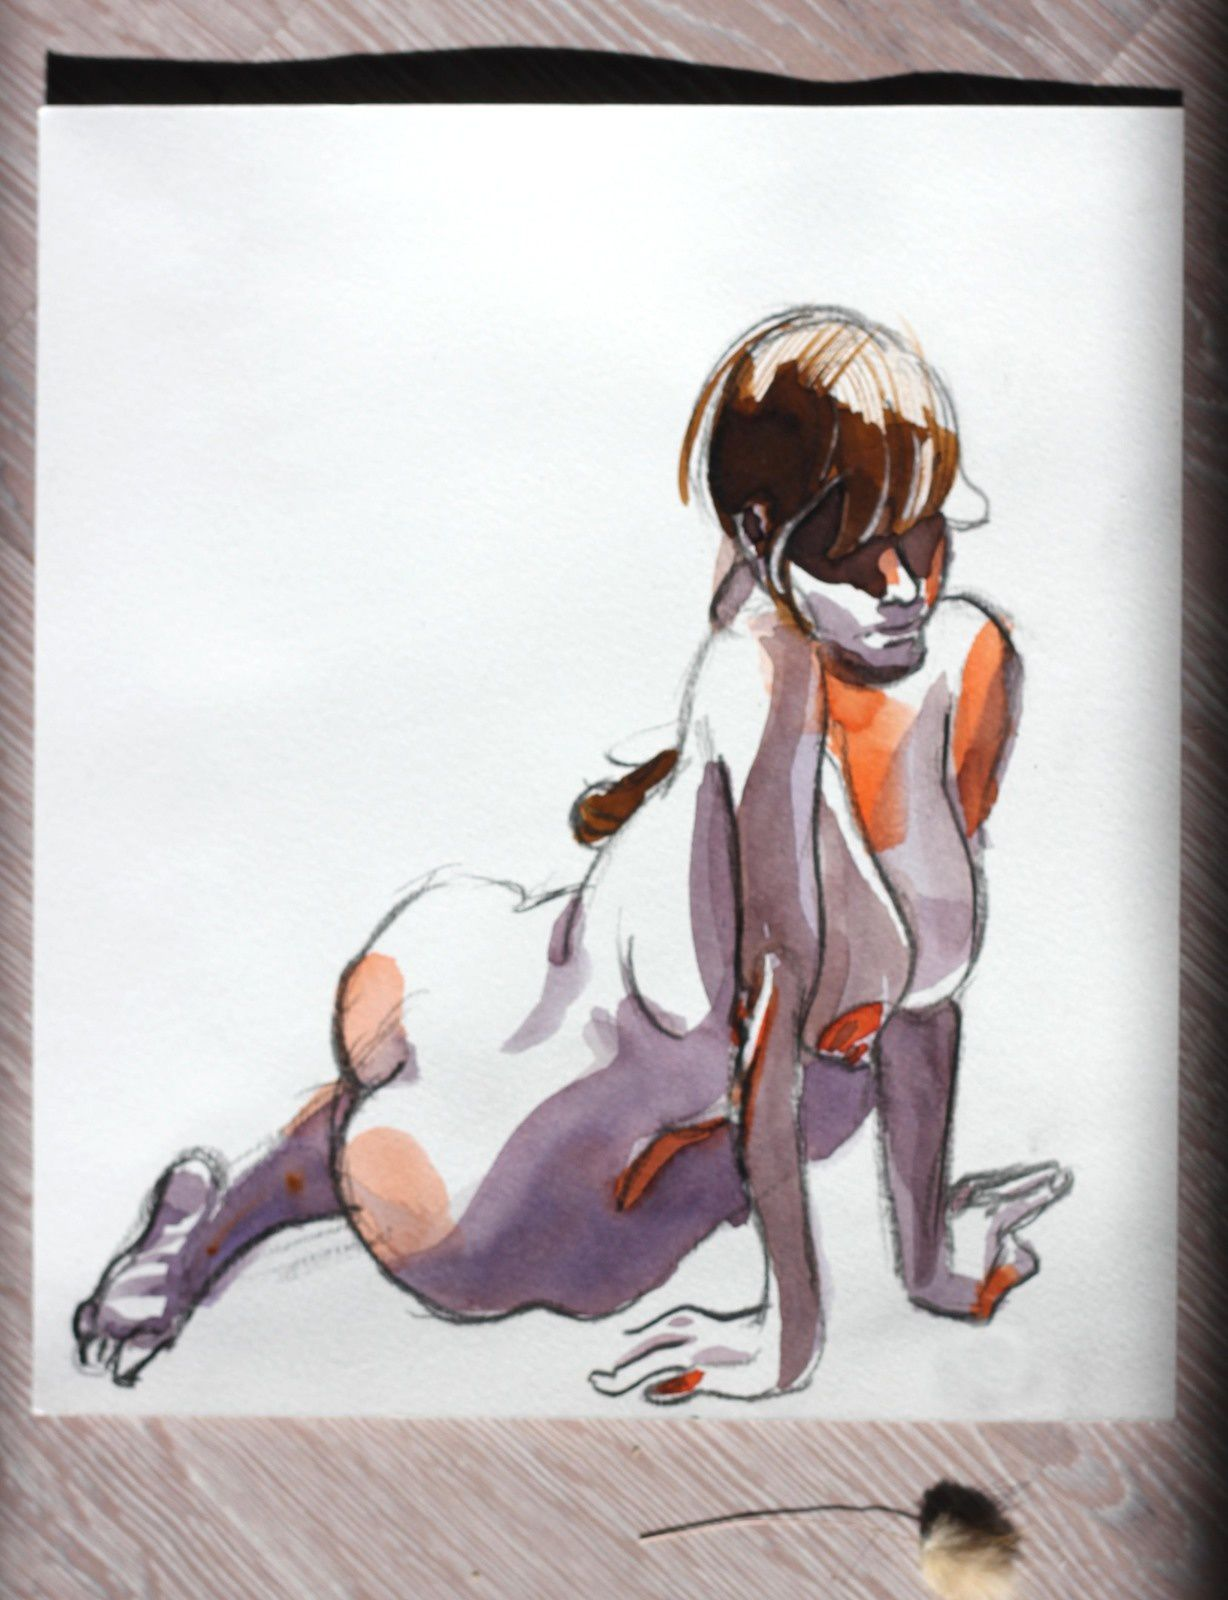 Modèle Vivant : pose de 10 minutes à l'aquarelle / Life-drawing : required time of 10 minutes, a watercolor